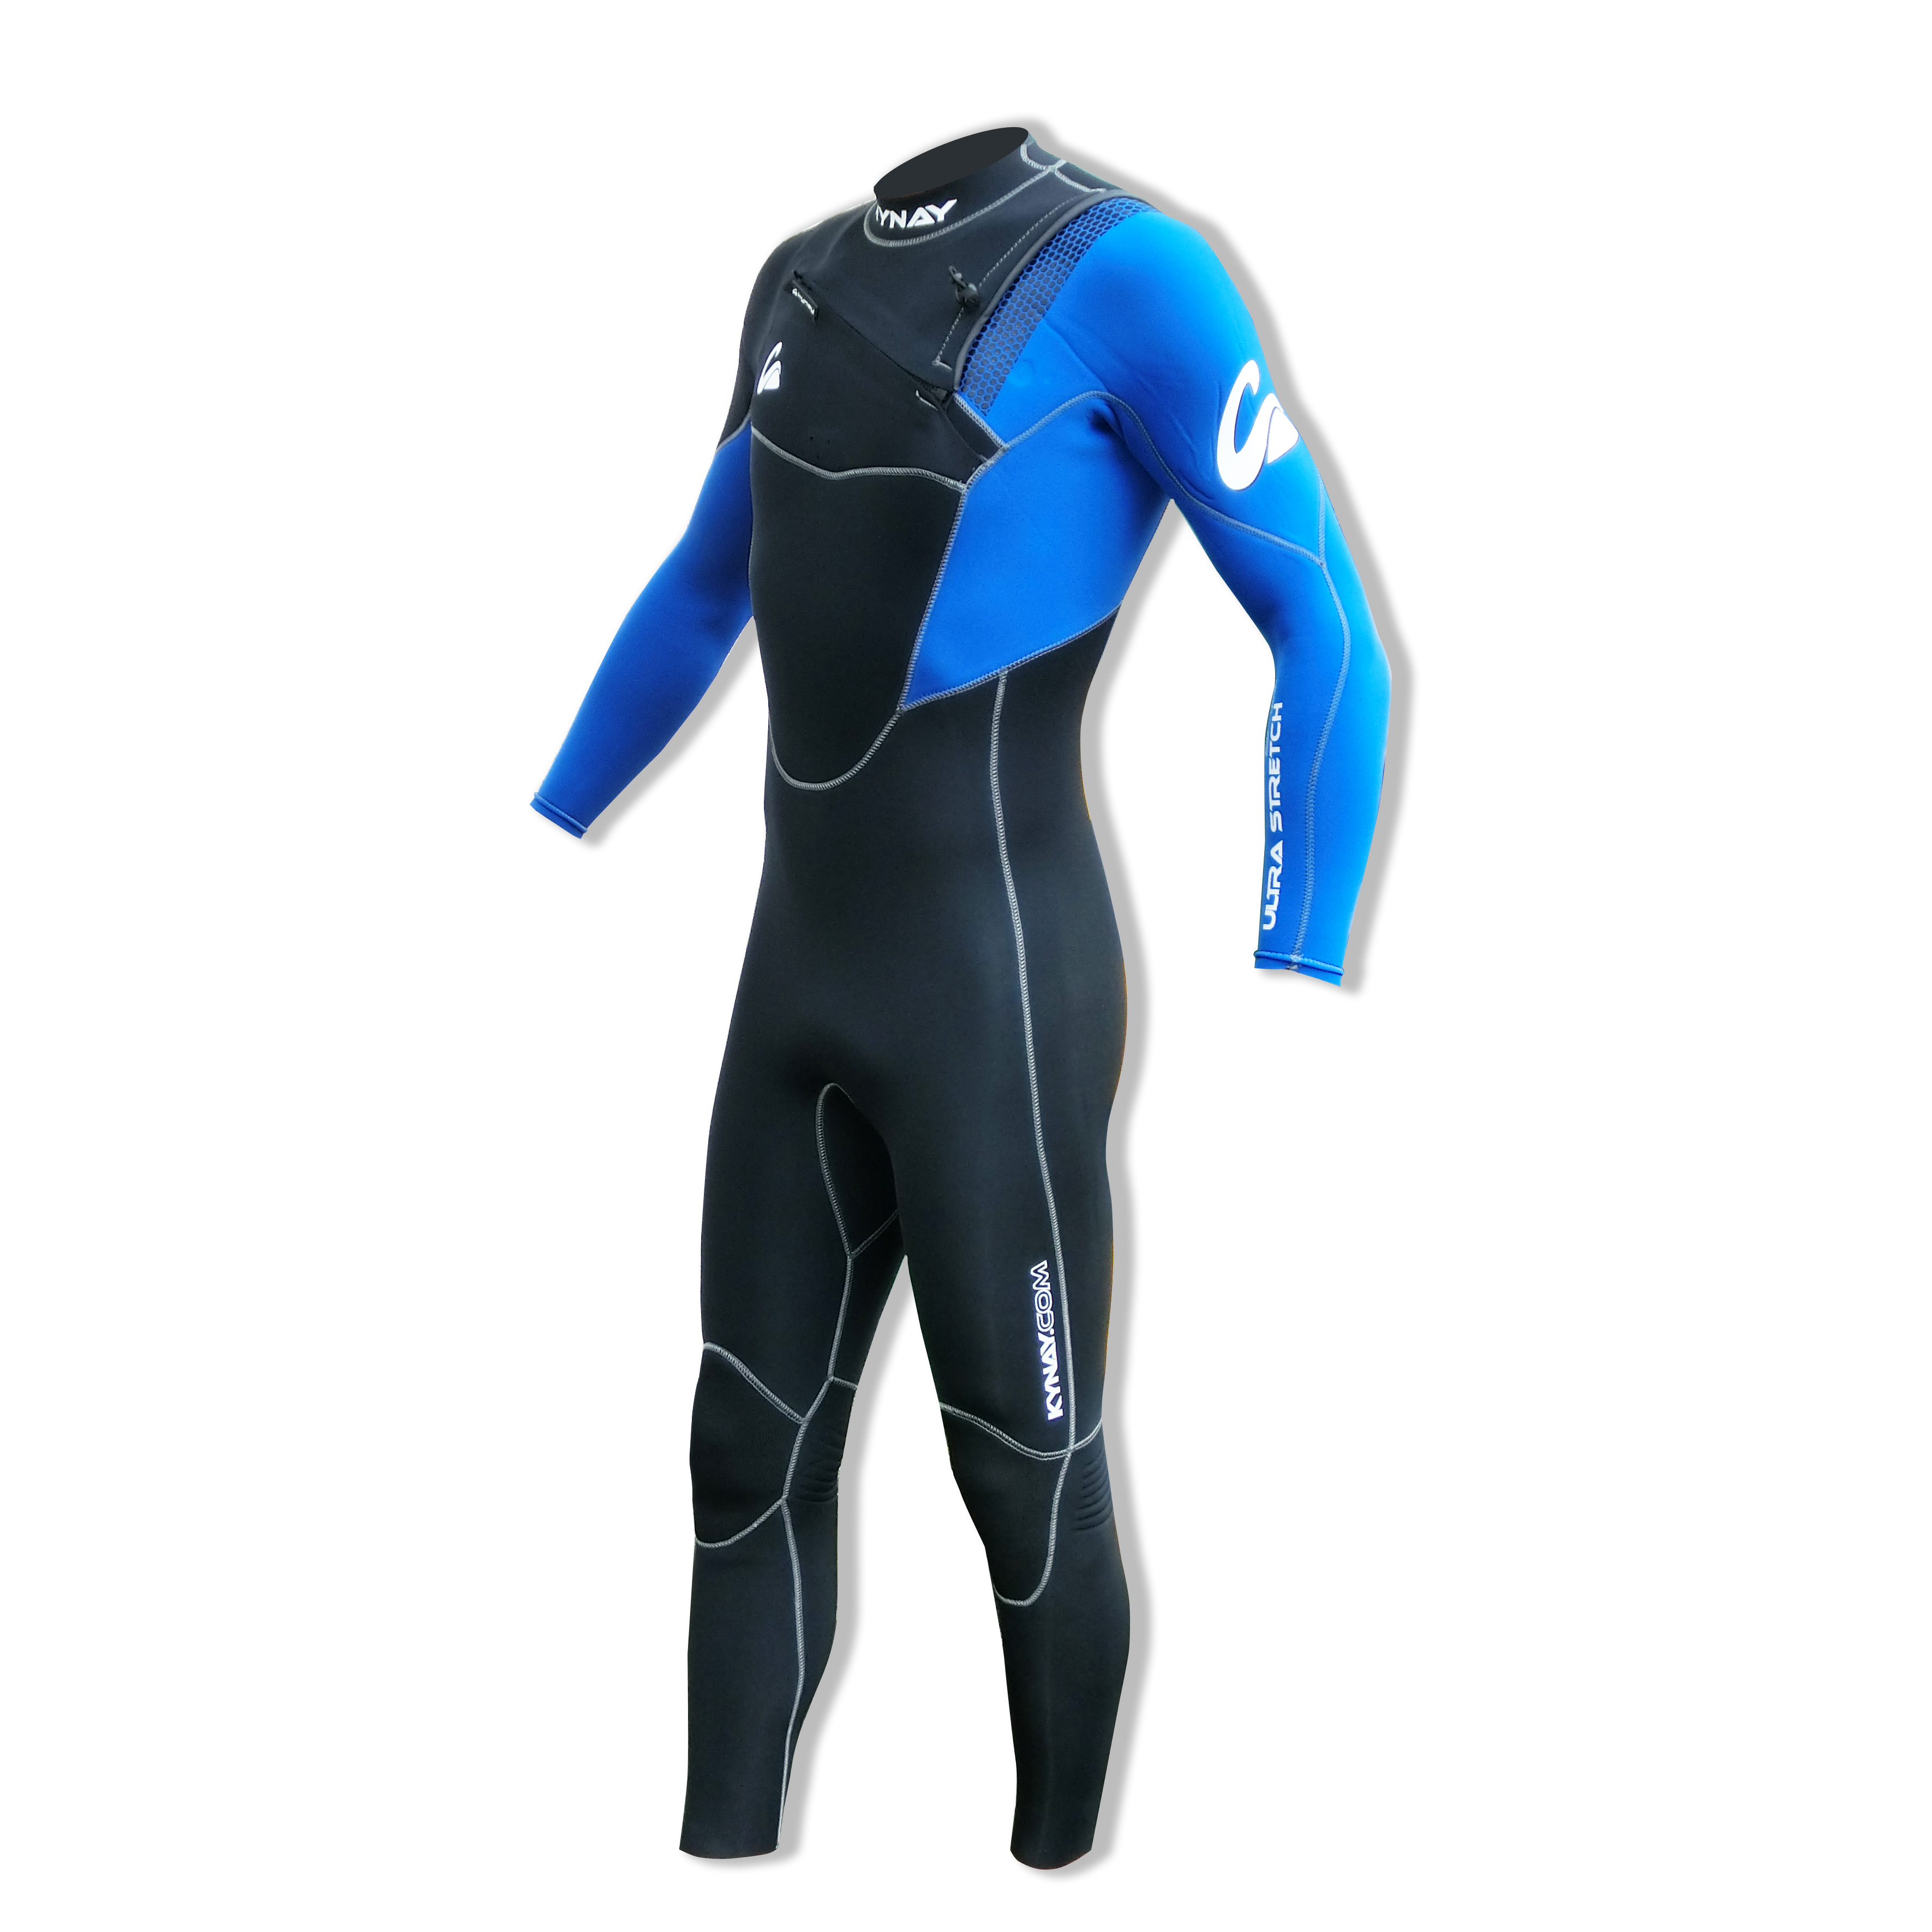 NEOPRENO INTEGRAL KYNAY 5/4/3 FRONT ZIP BLUE BLACK